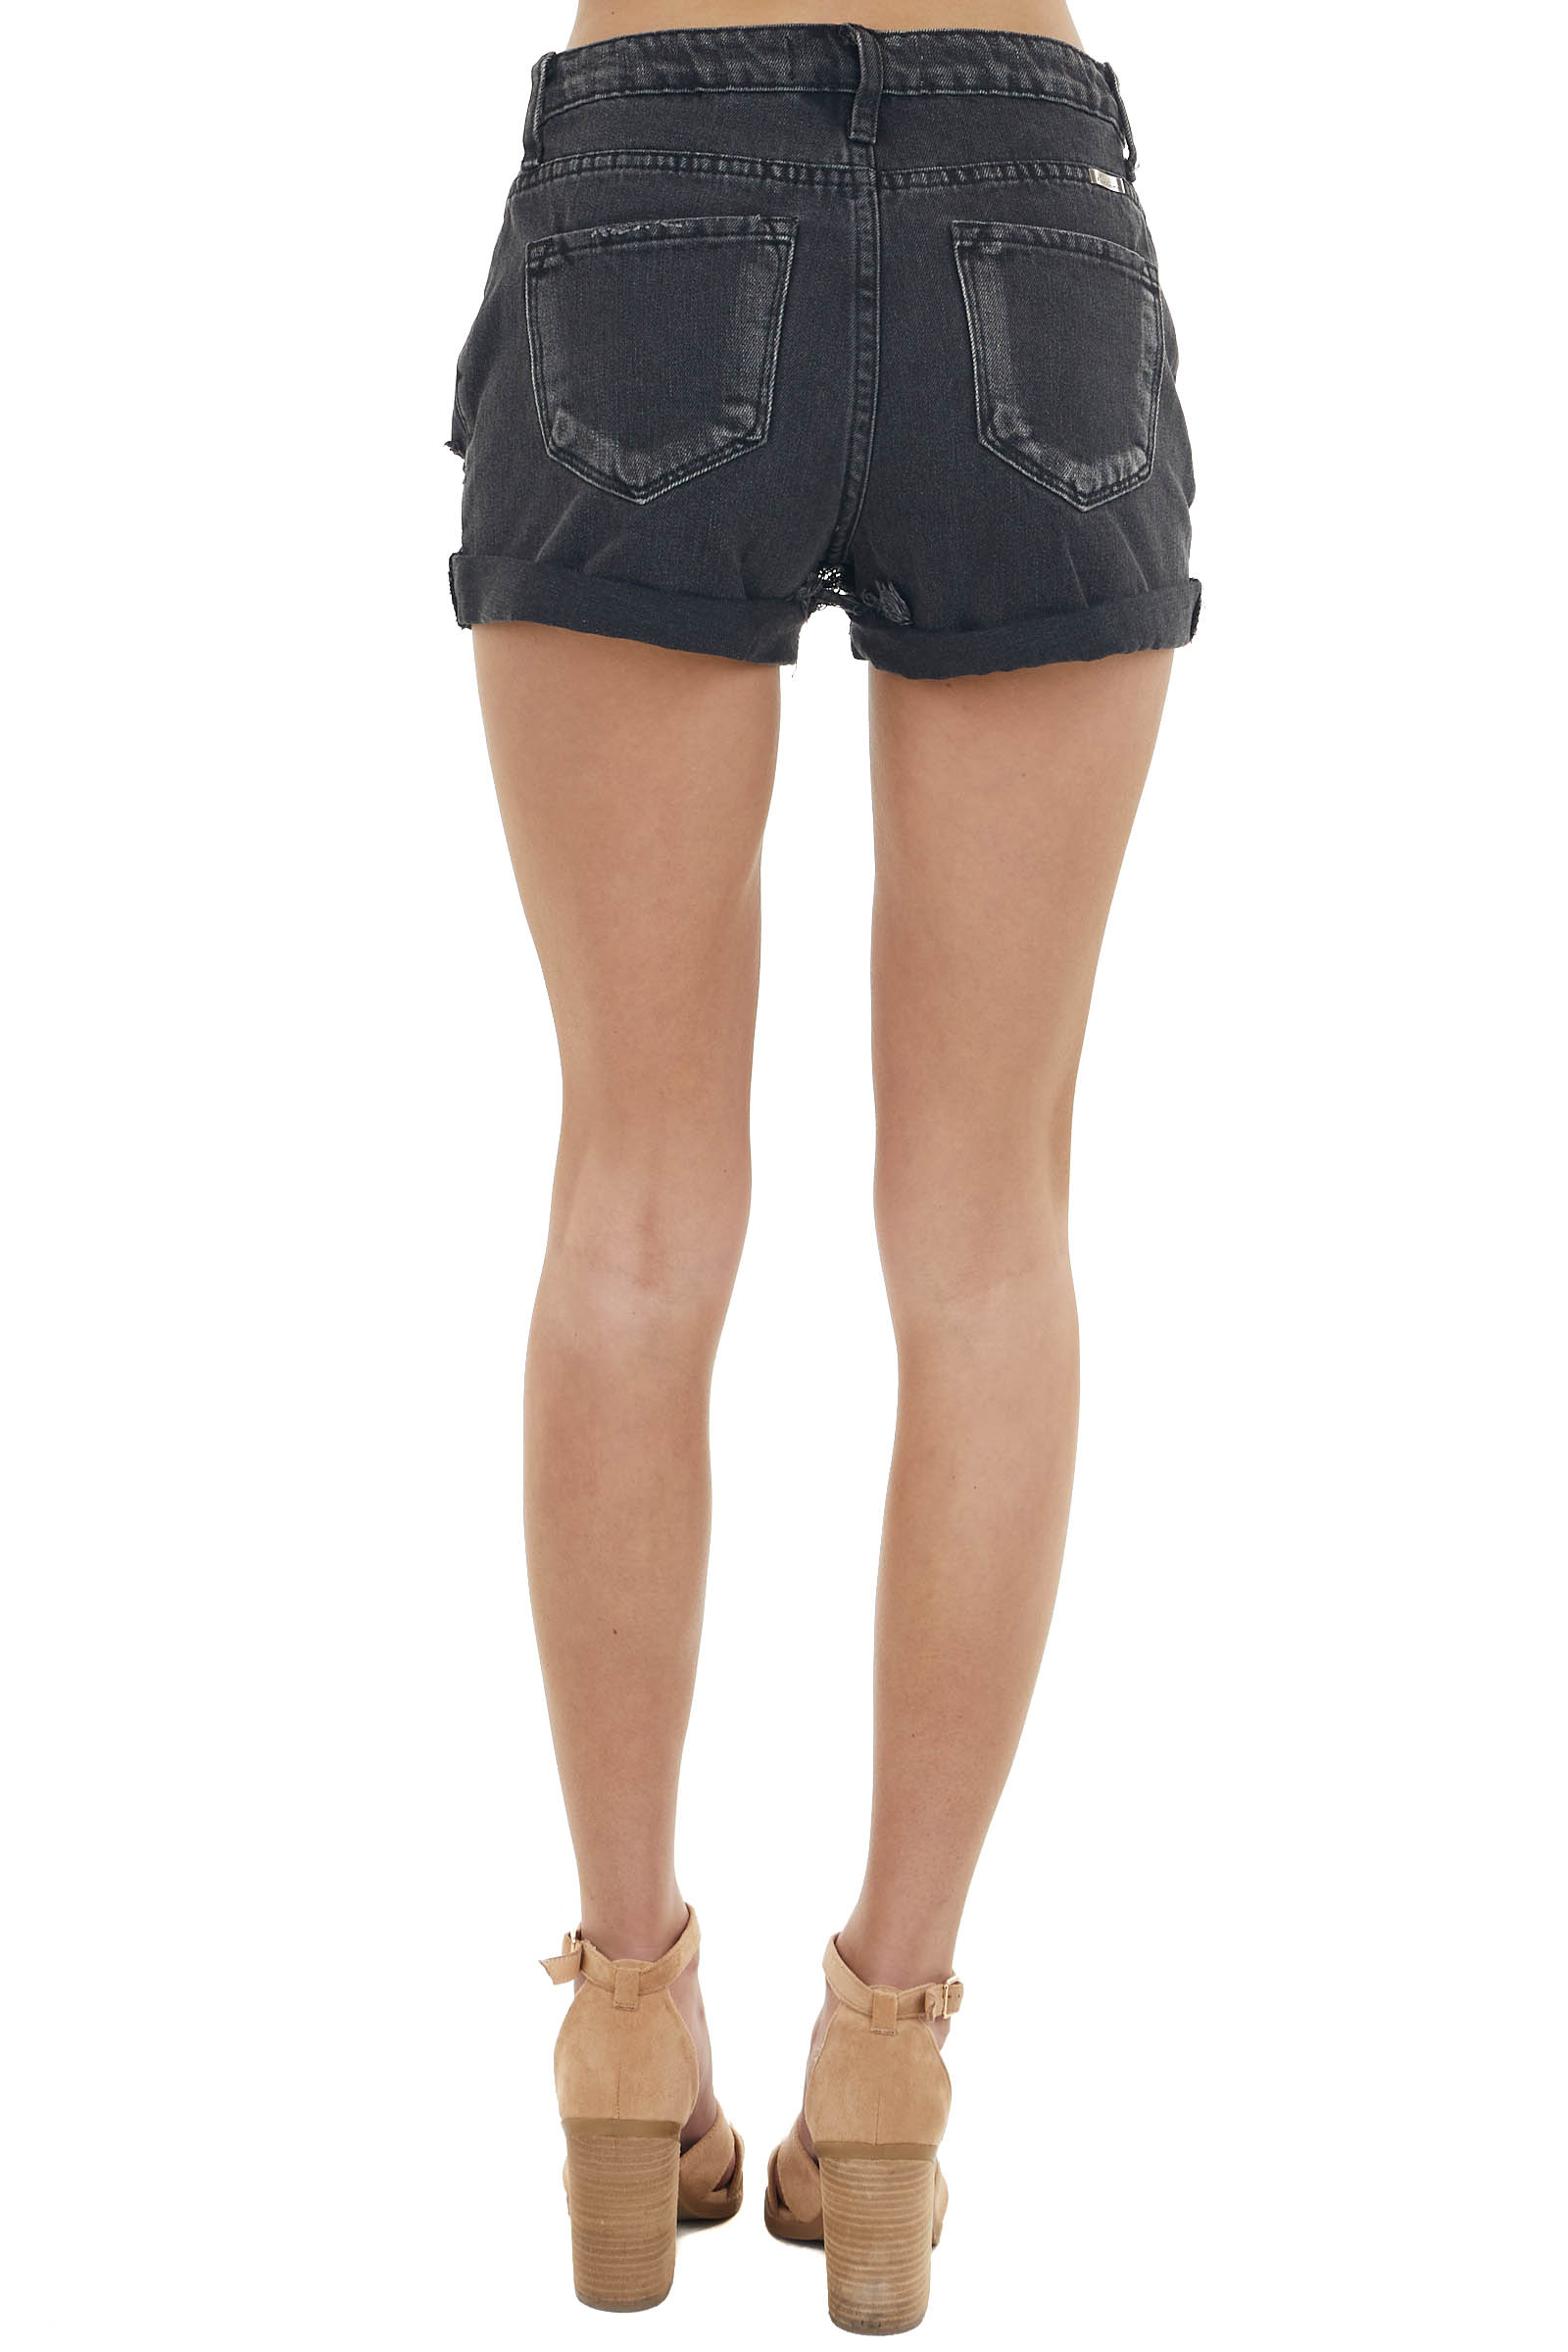 Faded Black Distressed High Rise Jean Shorts with Cuffed Hem